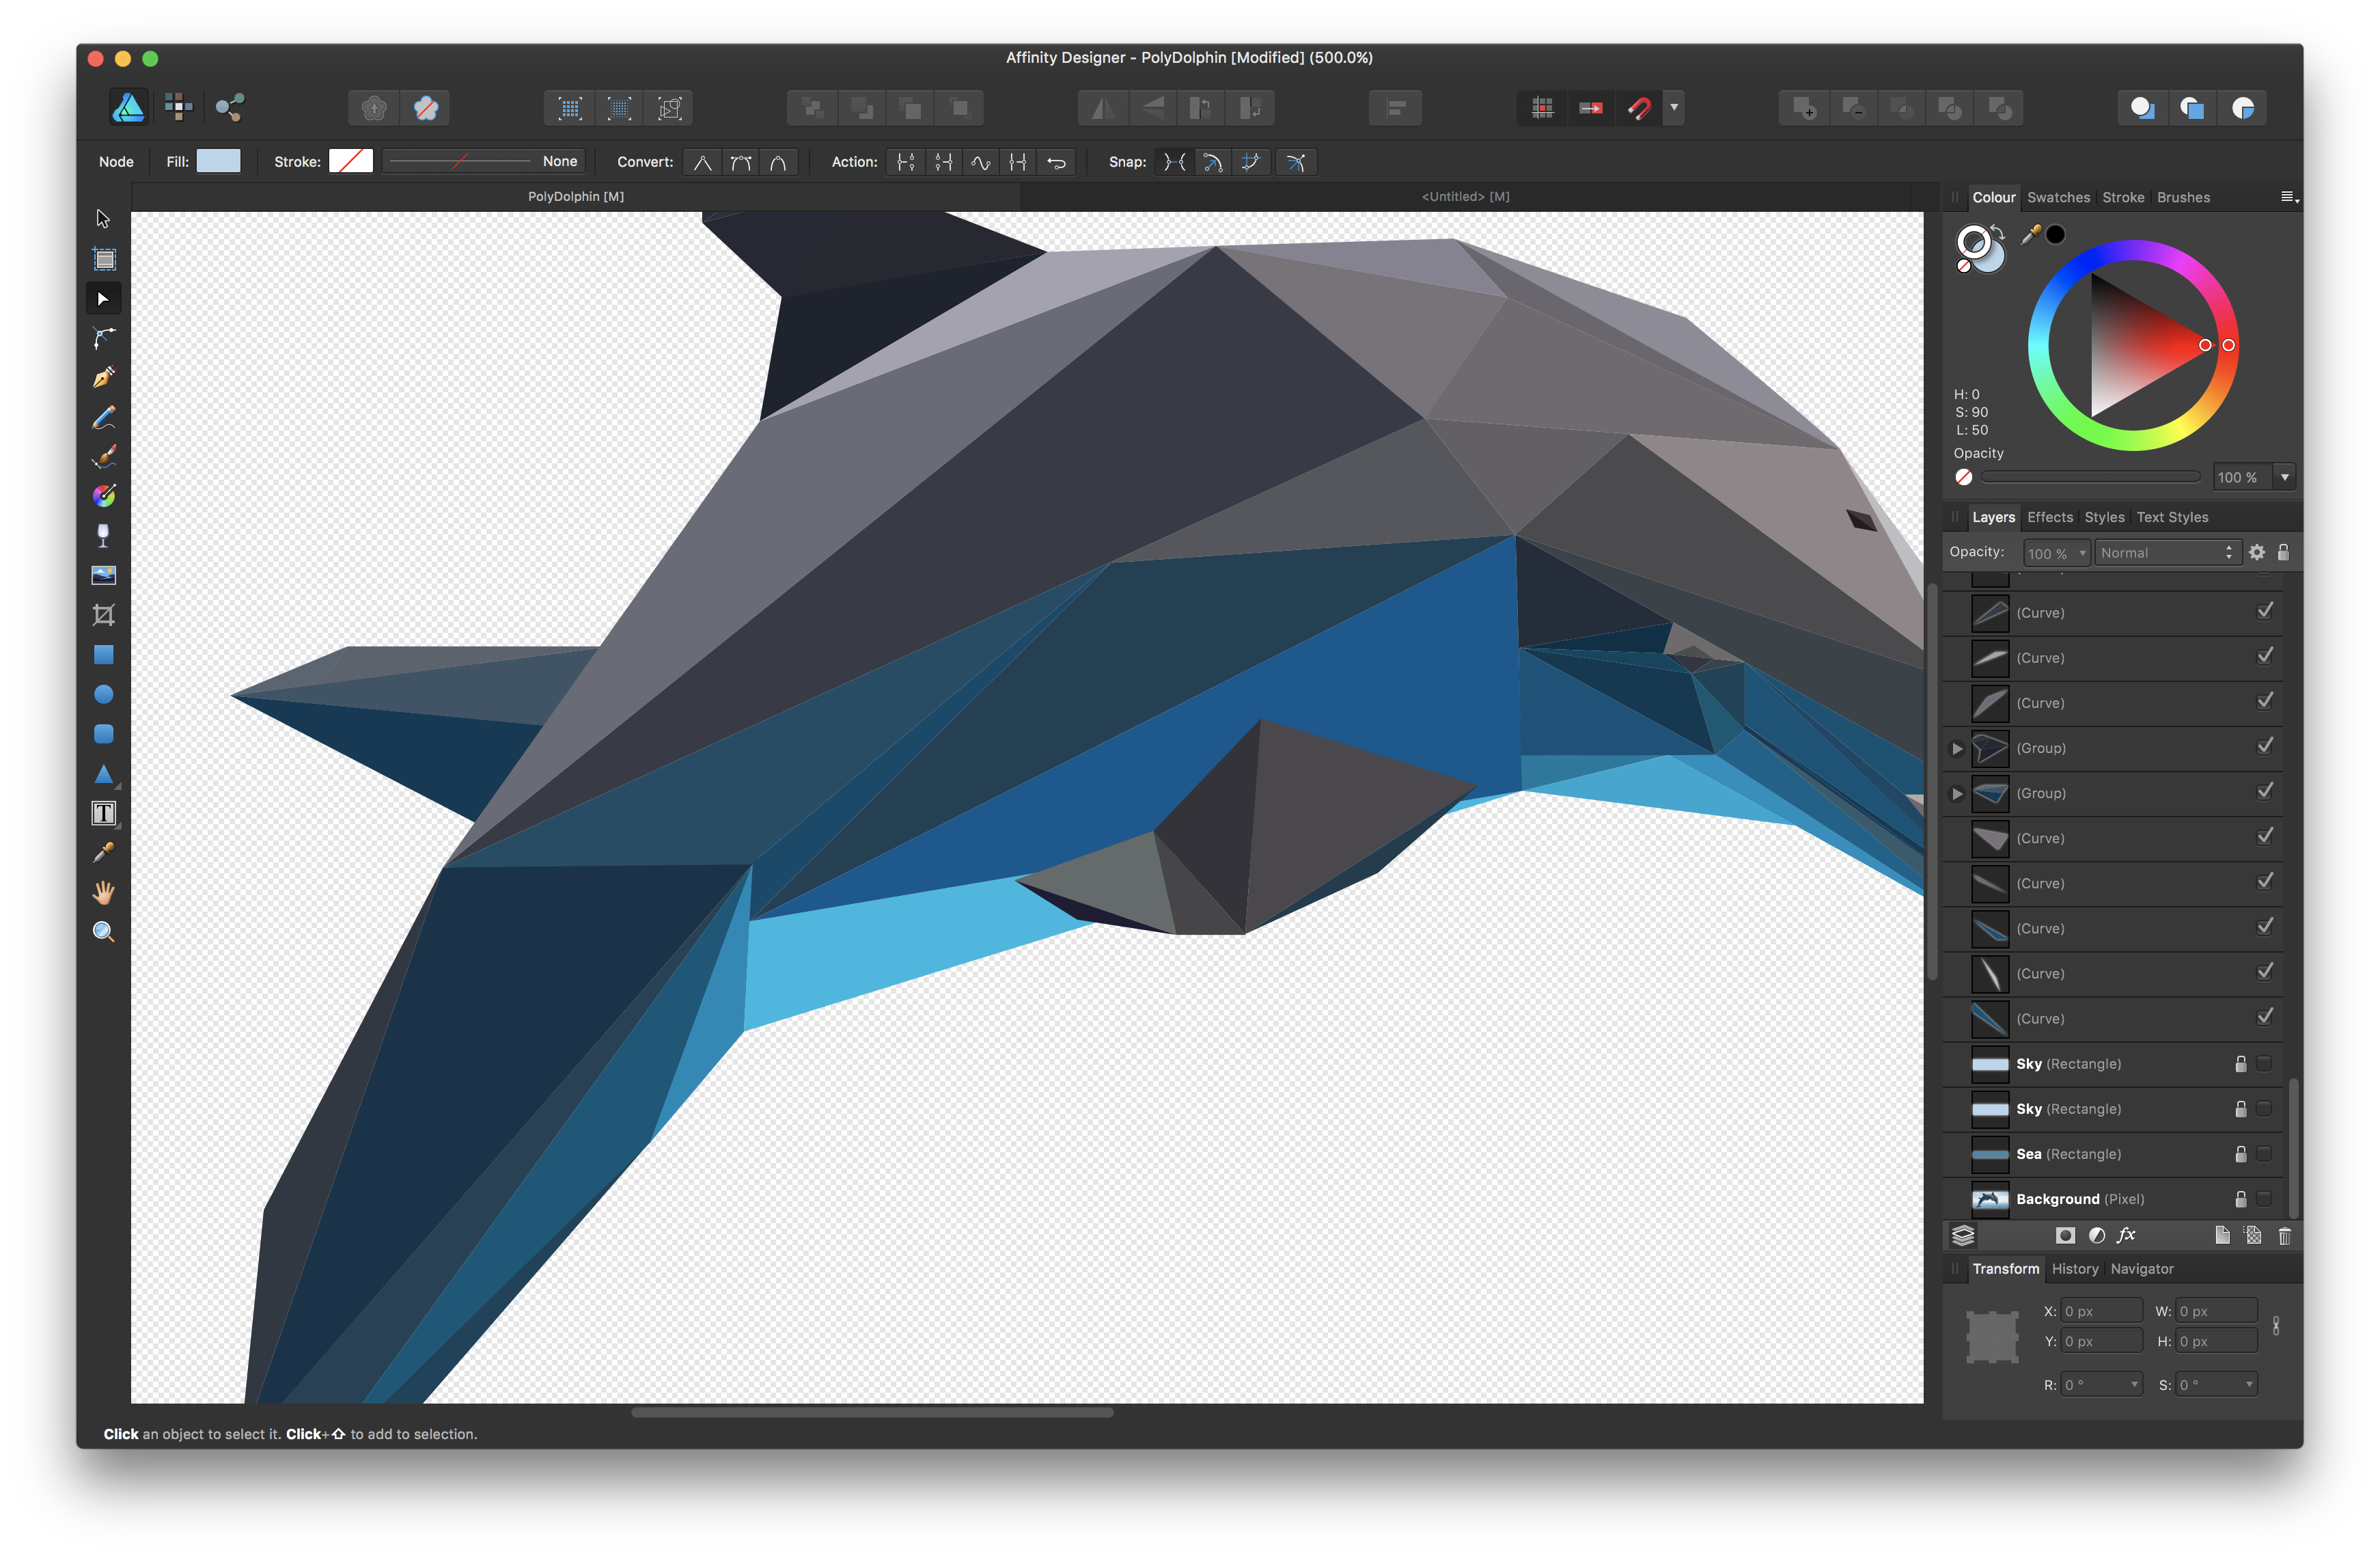 Low Poly, snapping and White gaps - Affinity on Desktop Questions